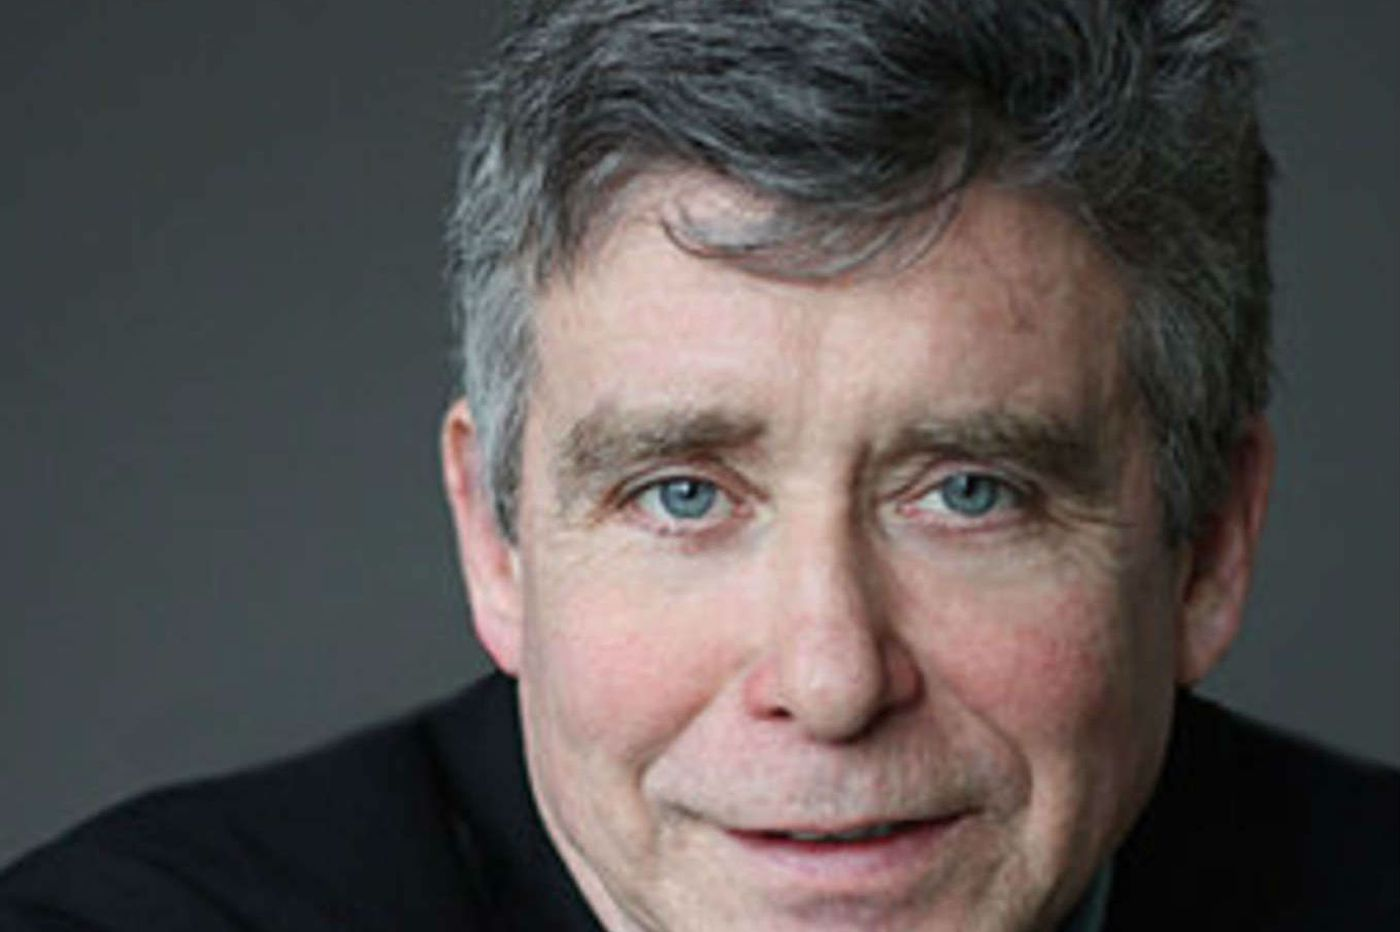 Q&A with Jay McInerney: New novel, 'Bright' future